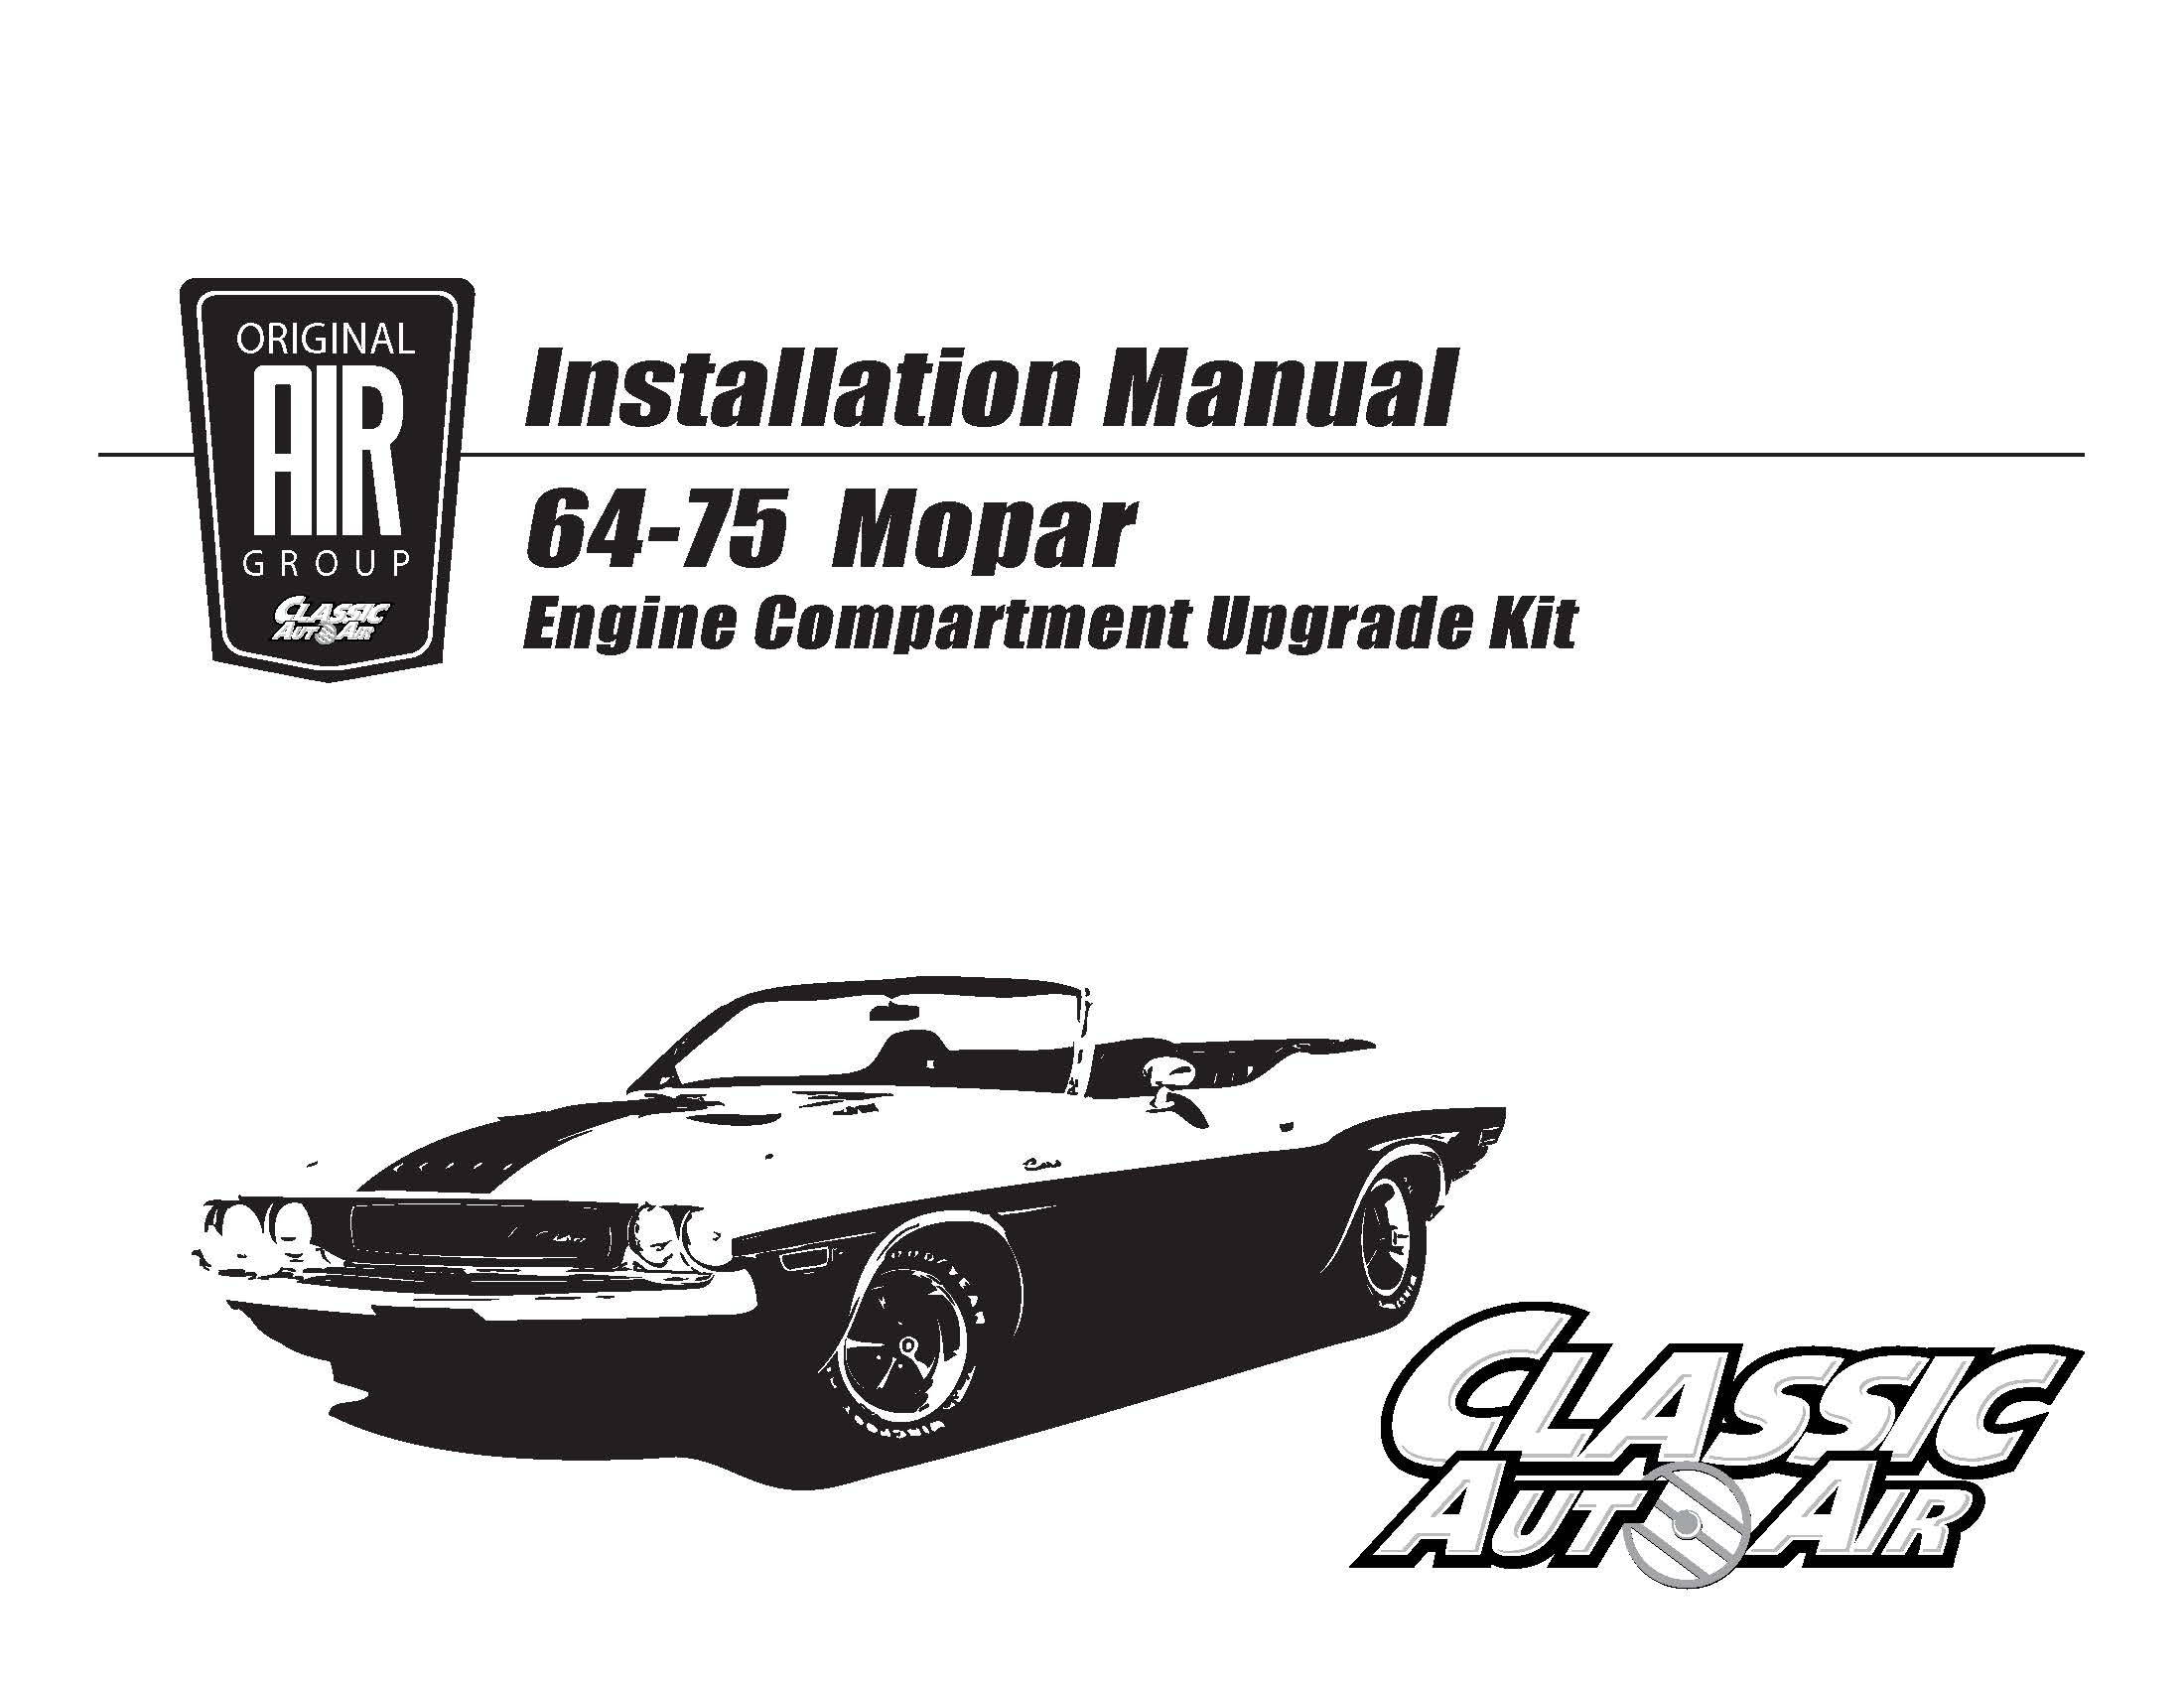 71 Charger 70 Barracuda A C Performance Upgrade Kit Big Block Plymouth Road Runner Engine Bay Diagram F